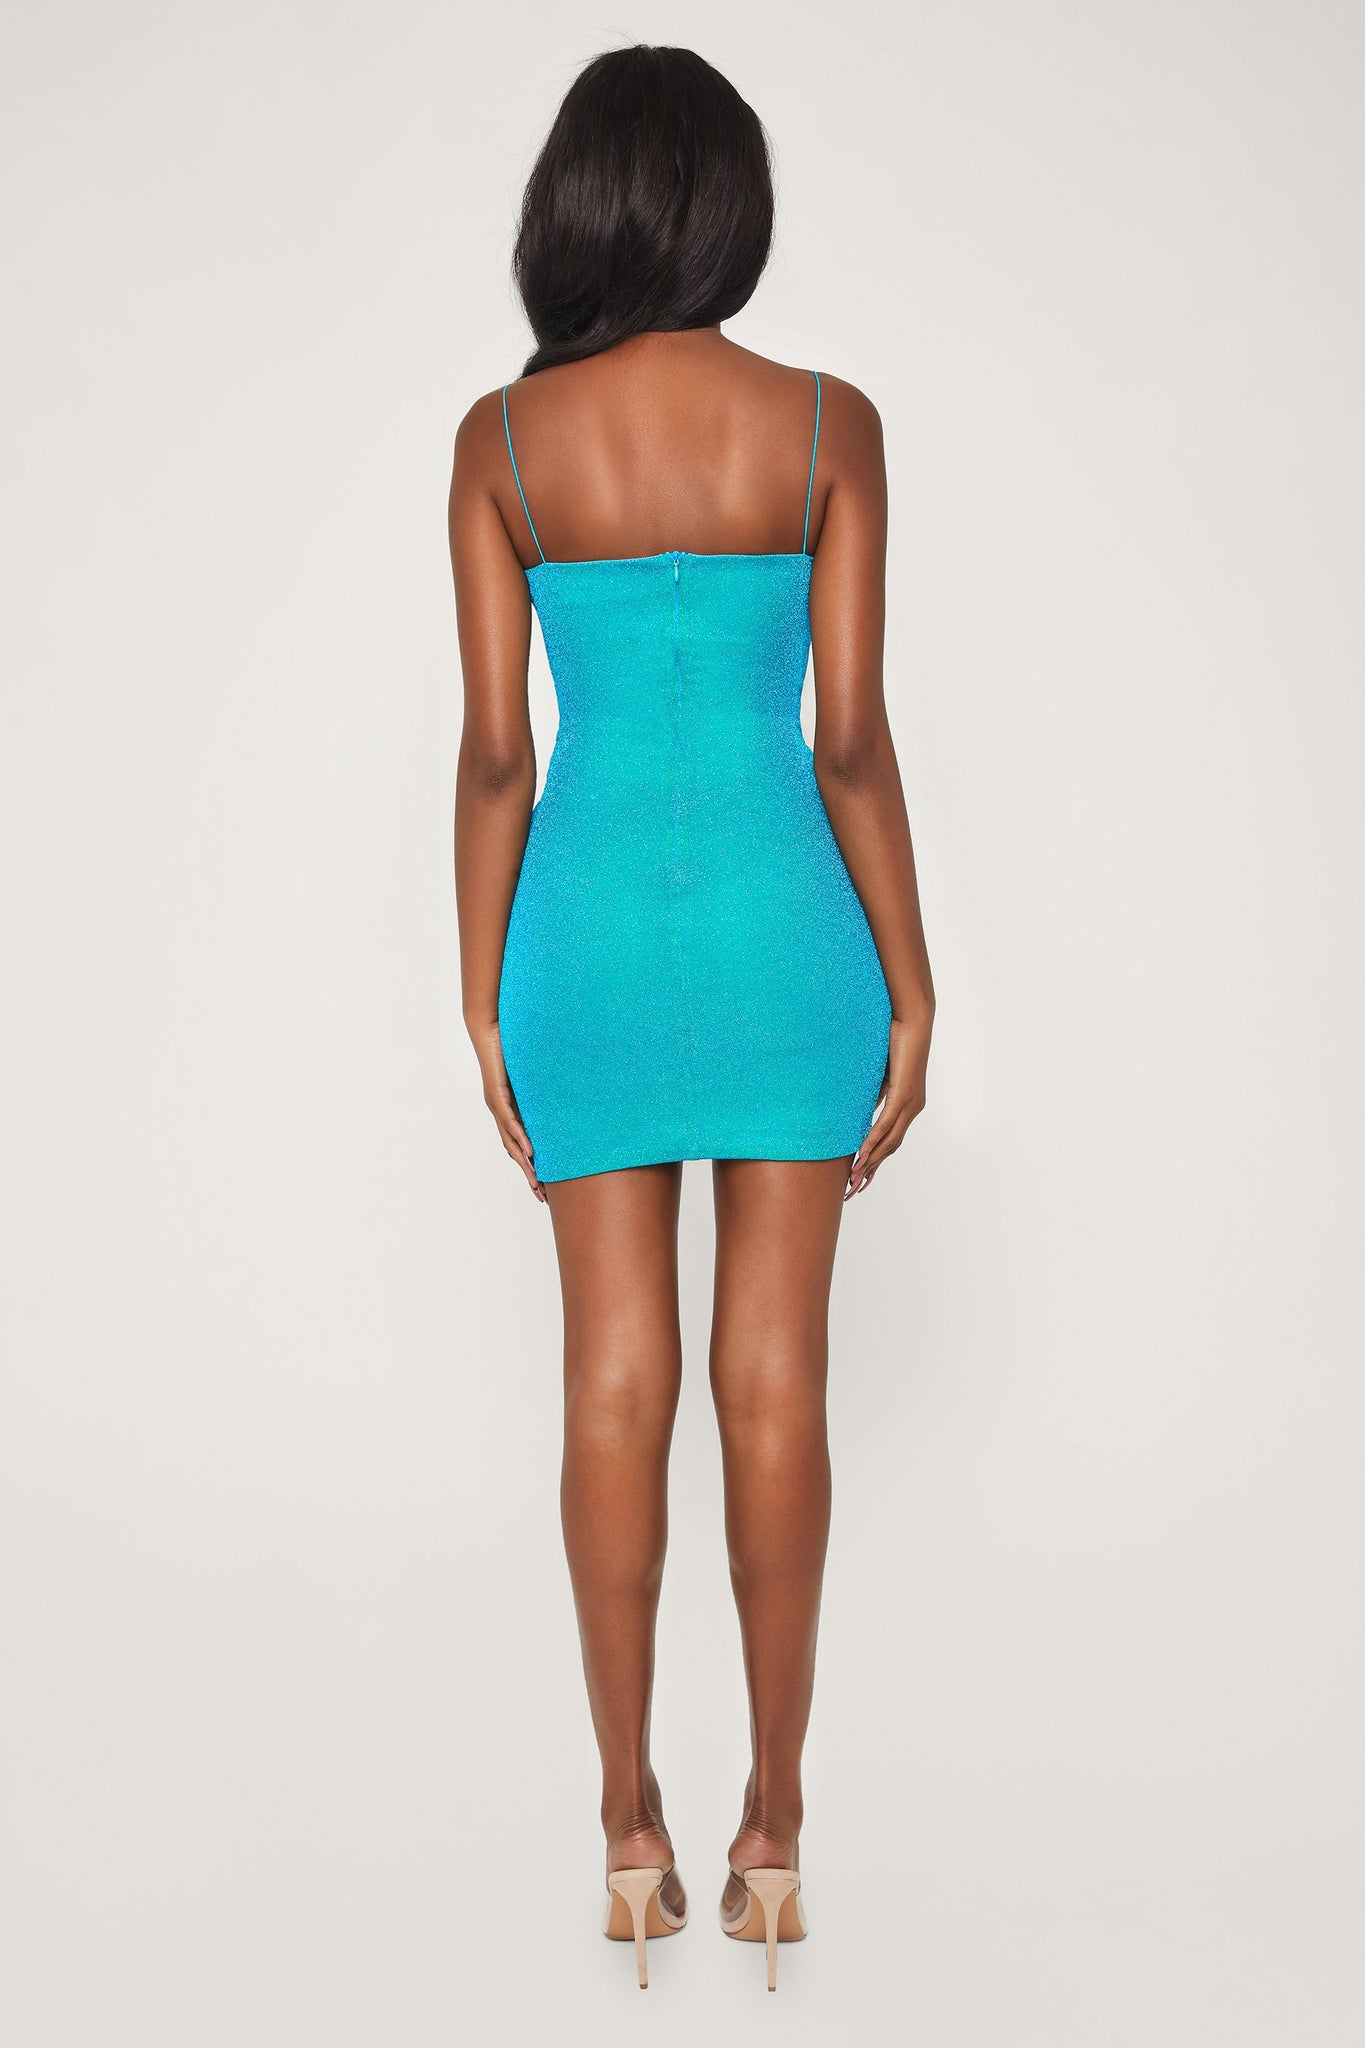 Mia Thin Strap Shimmer Dress - Turquoise - MESHKI